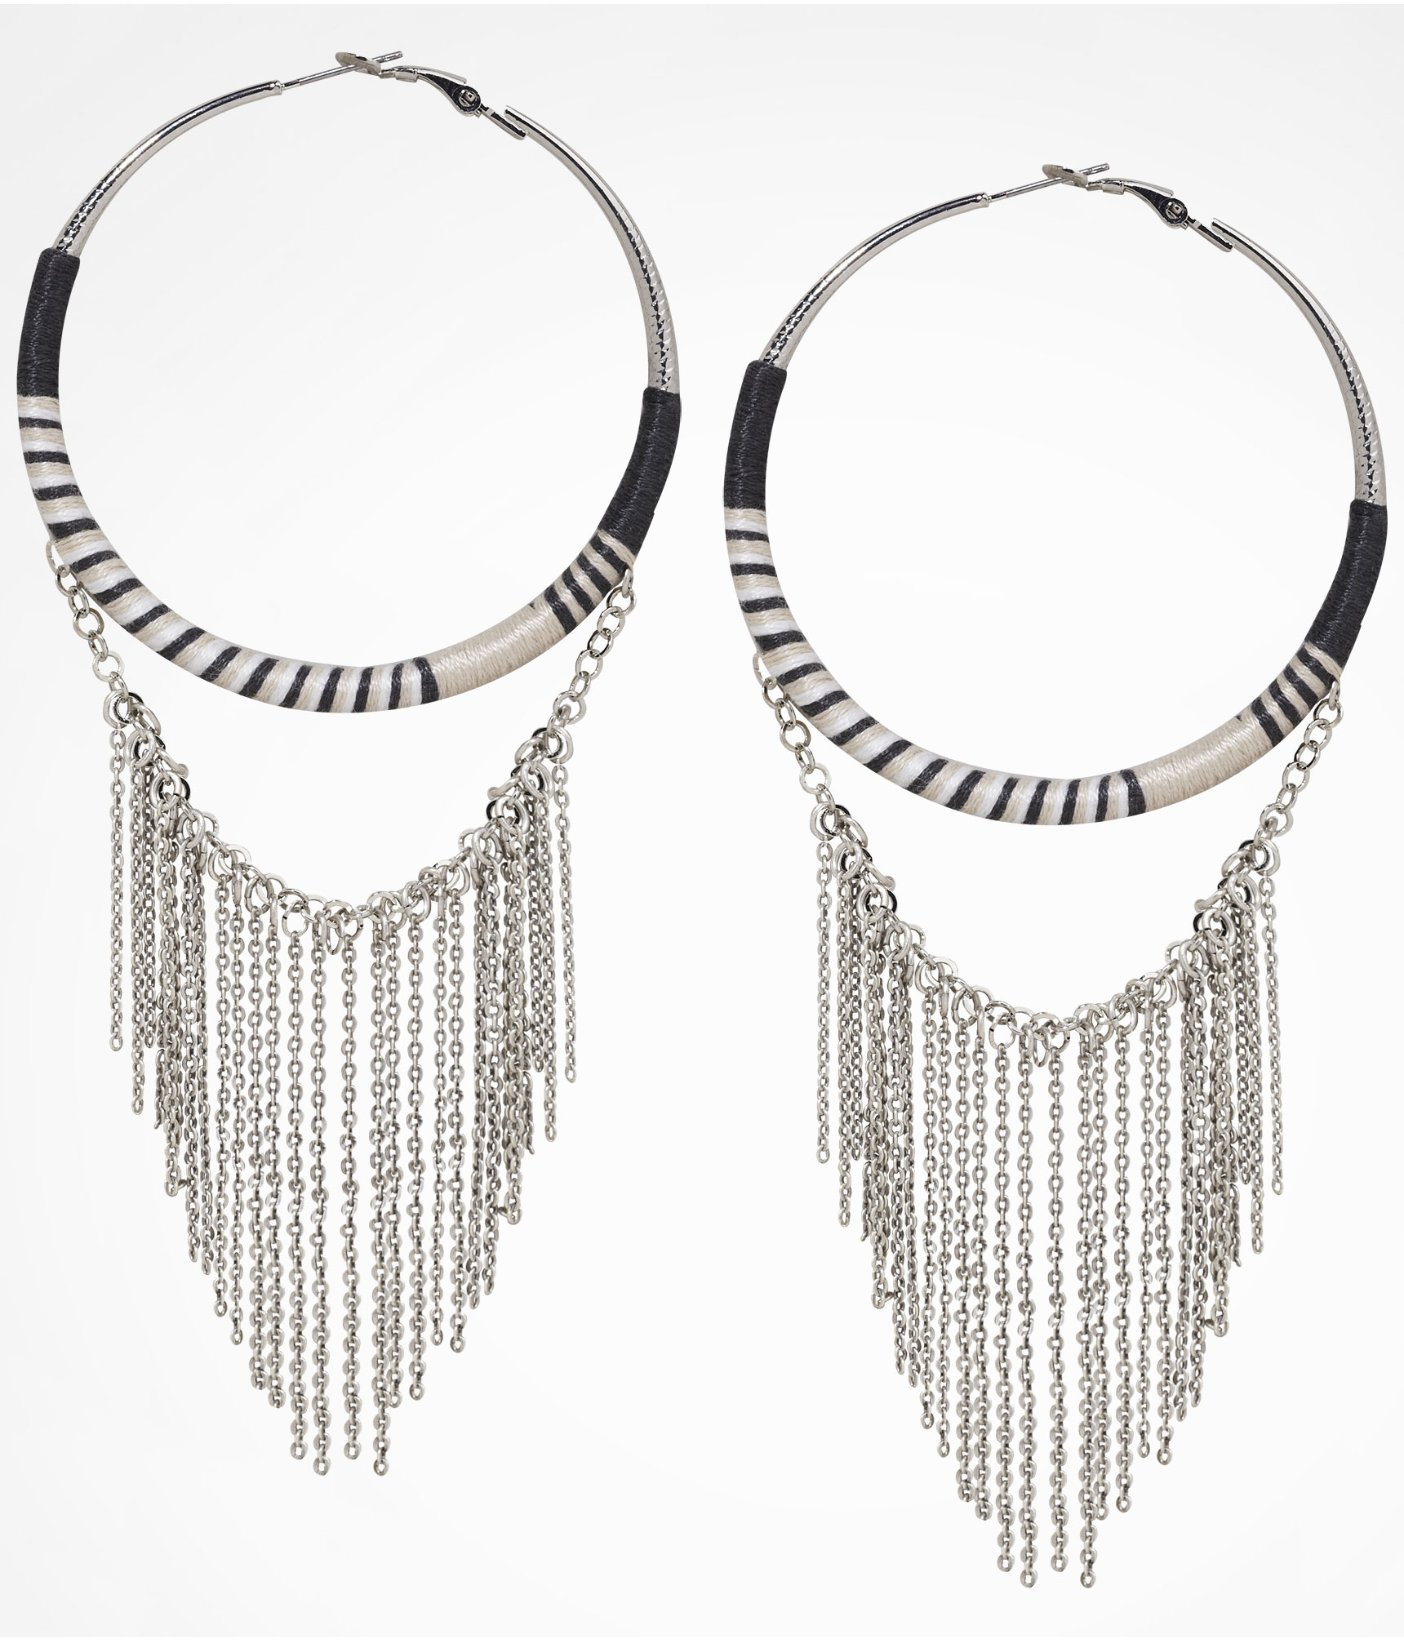 Express Thread Wrapped Chain Fringe Hoop Earrings in Metallic Lyst